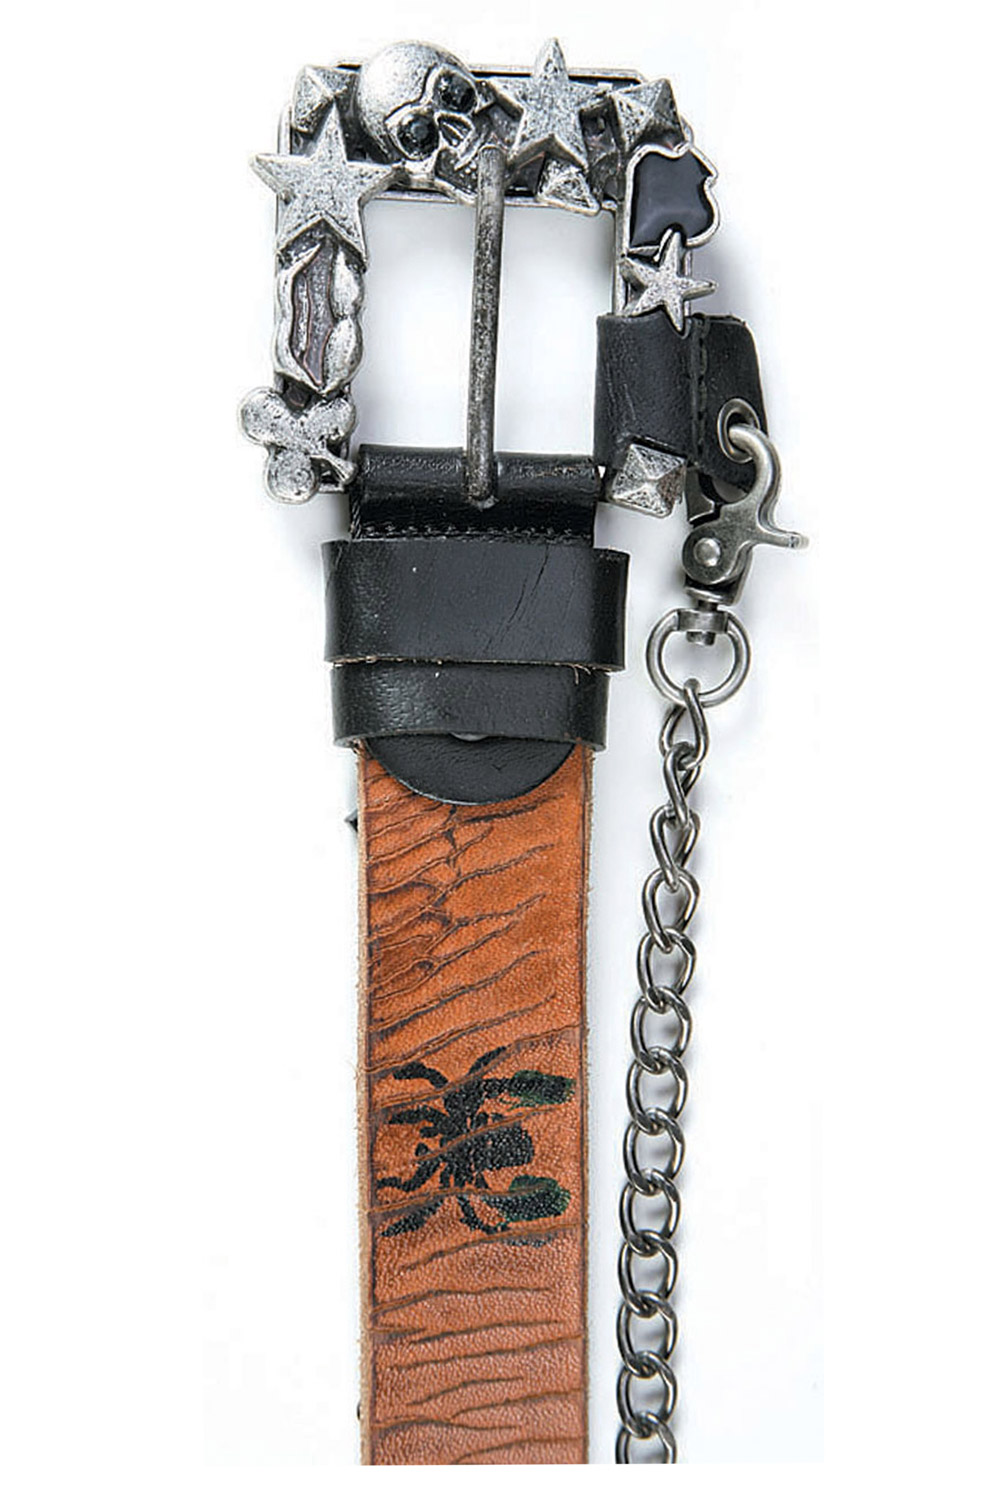 Art Sports Belt from natural dark brown skin patterned with skulls and spiders, studs and attached chain - 514644